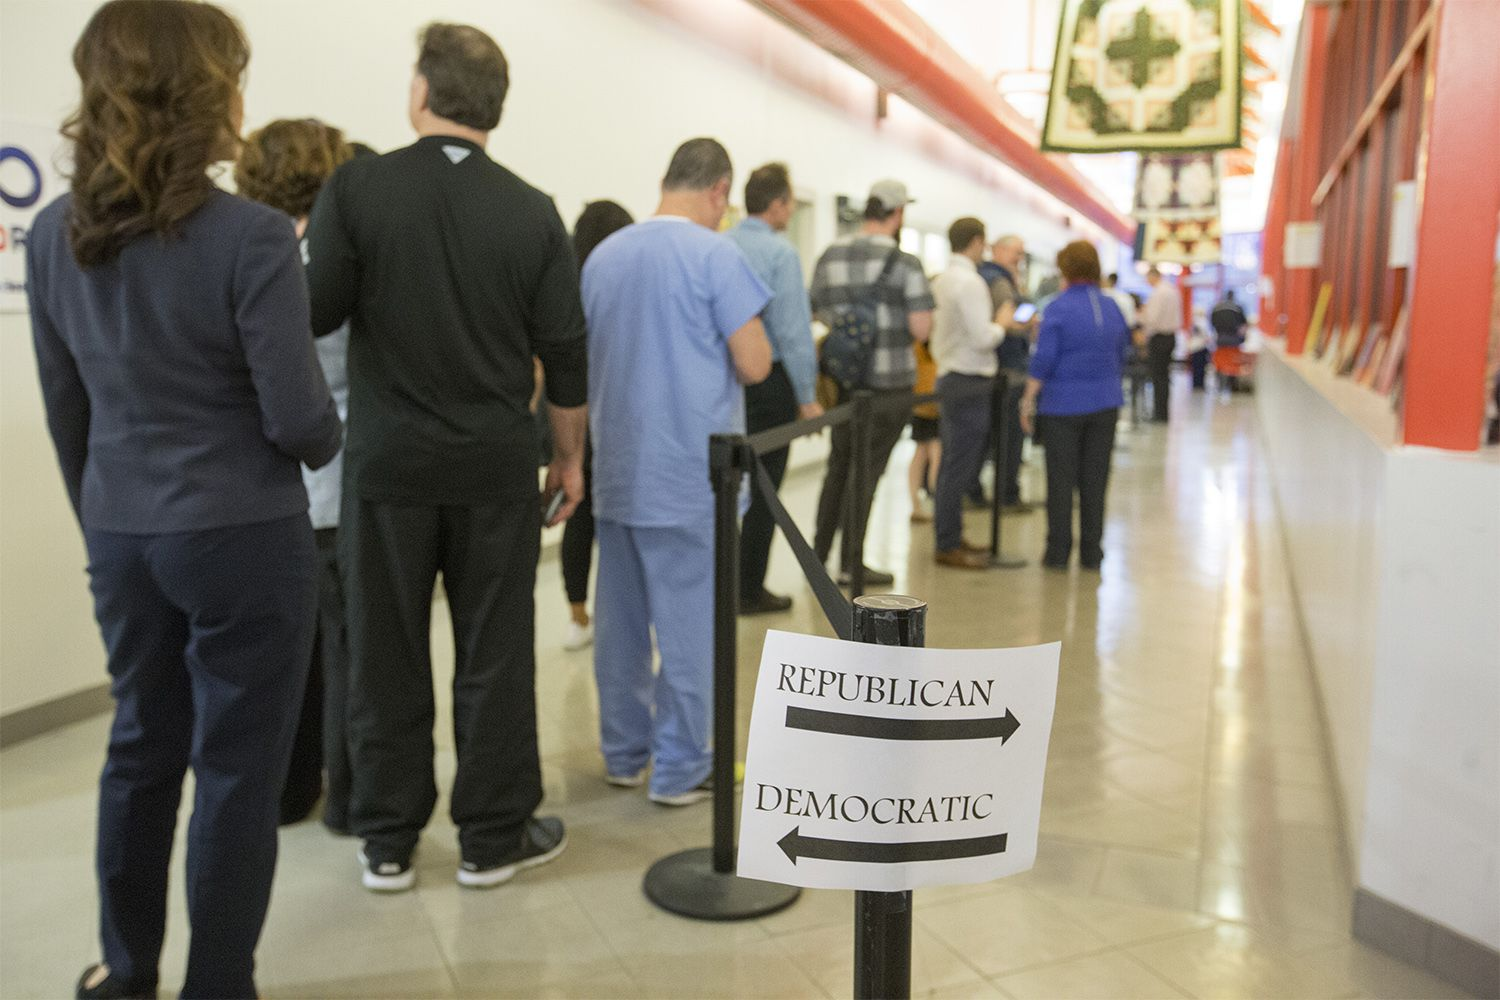 A long Democratic line and an empty Republican line as voters arrive to the polls in the last hour of the primaries near downtown Houston on Tuesday, March 6, 2018.